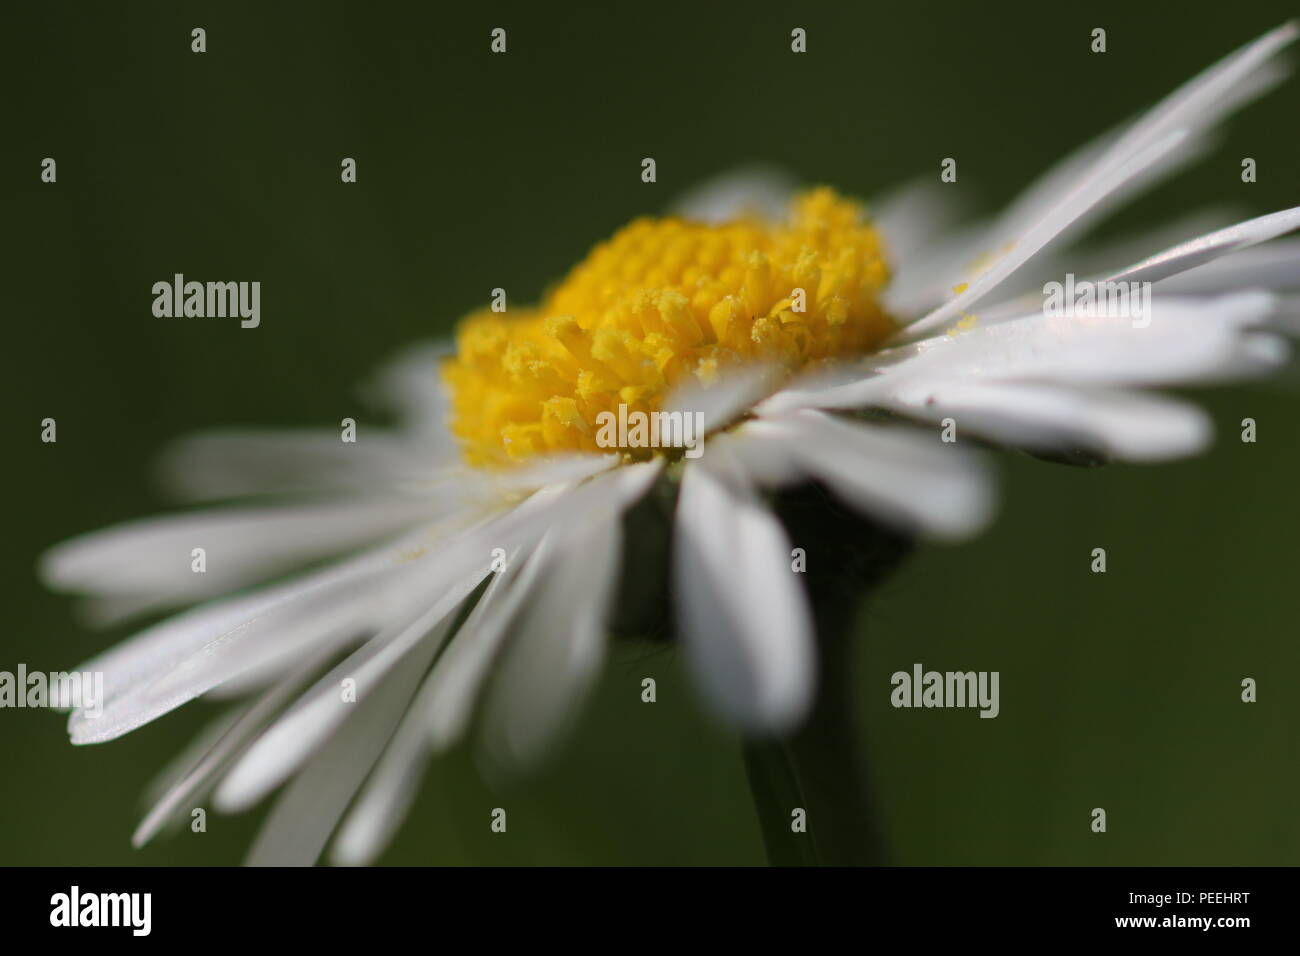 Daisy photographed on the side makro - Stock Image